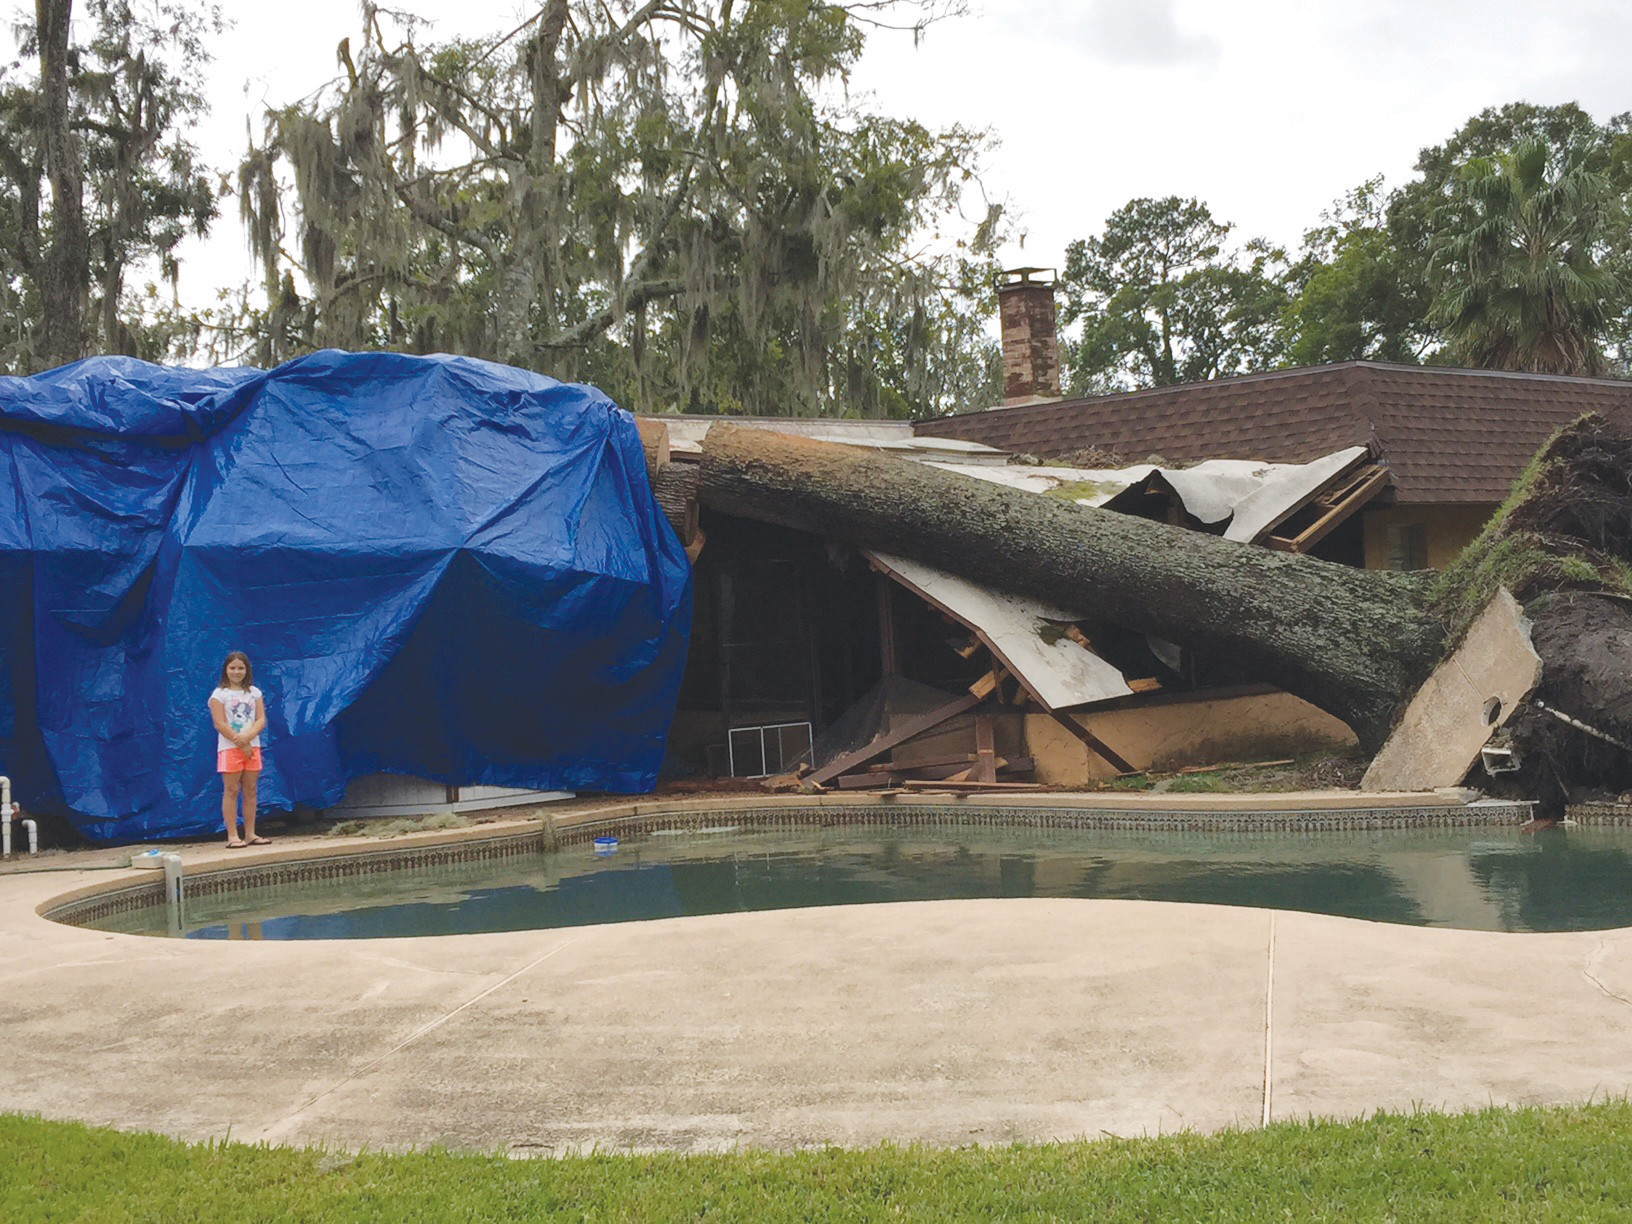 Gene Parker's home in the 1400 block of Clover Avenue in Orange Park took a hit from the after affects of Hurricane Matthew when an oak tree crashed on his roof while taking out part of the decking around the pool.